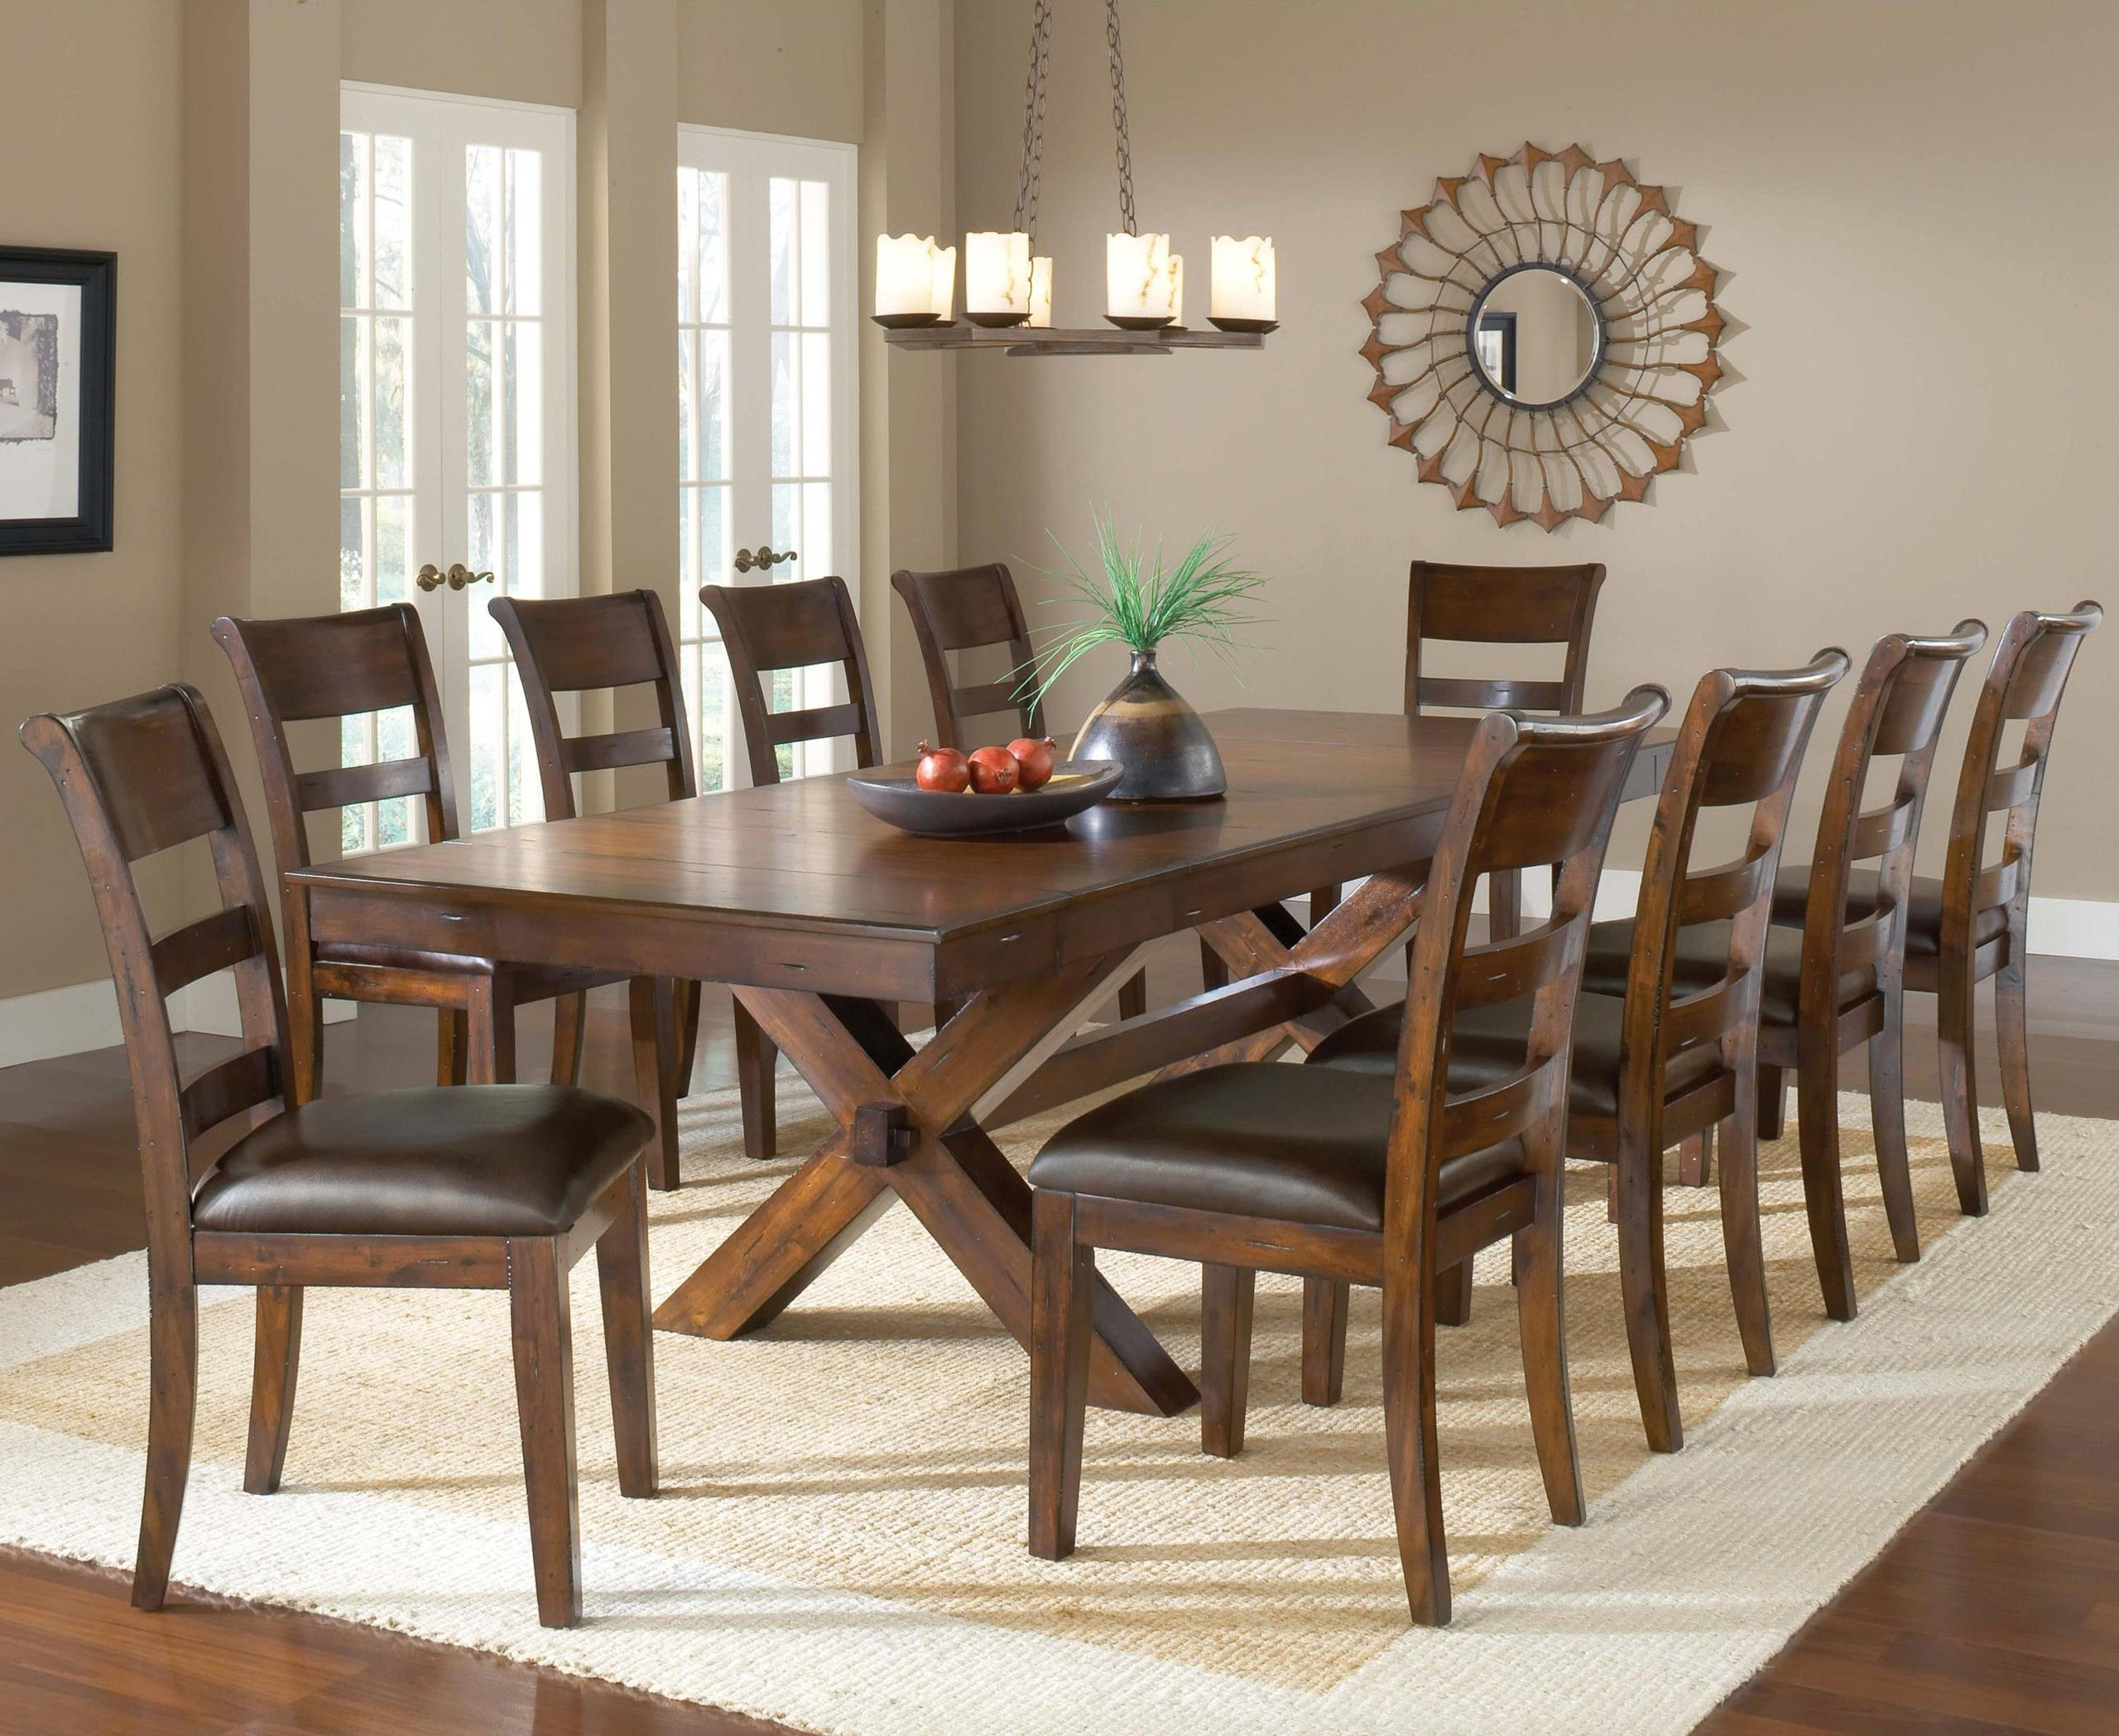 Delicieux Extending Dining Table Seats 10